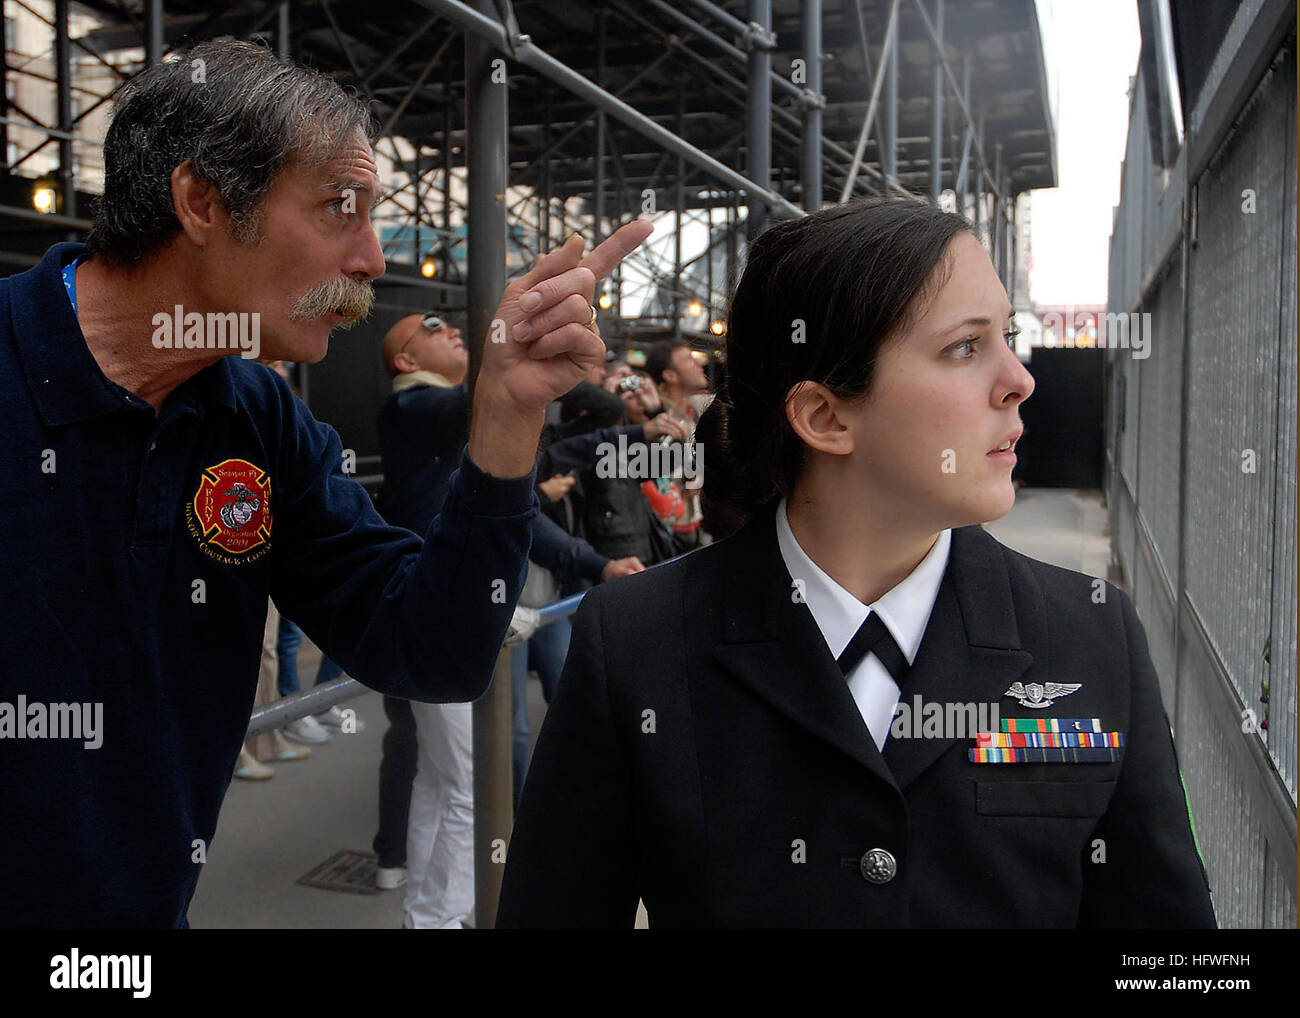 081014-N-1778A-137 NEW YORK (Oct. 13, 2008) Air Traffic Controller Airman Stephanie Goldstein, embarked aboard the - Stock Image